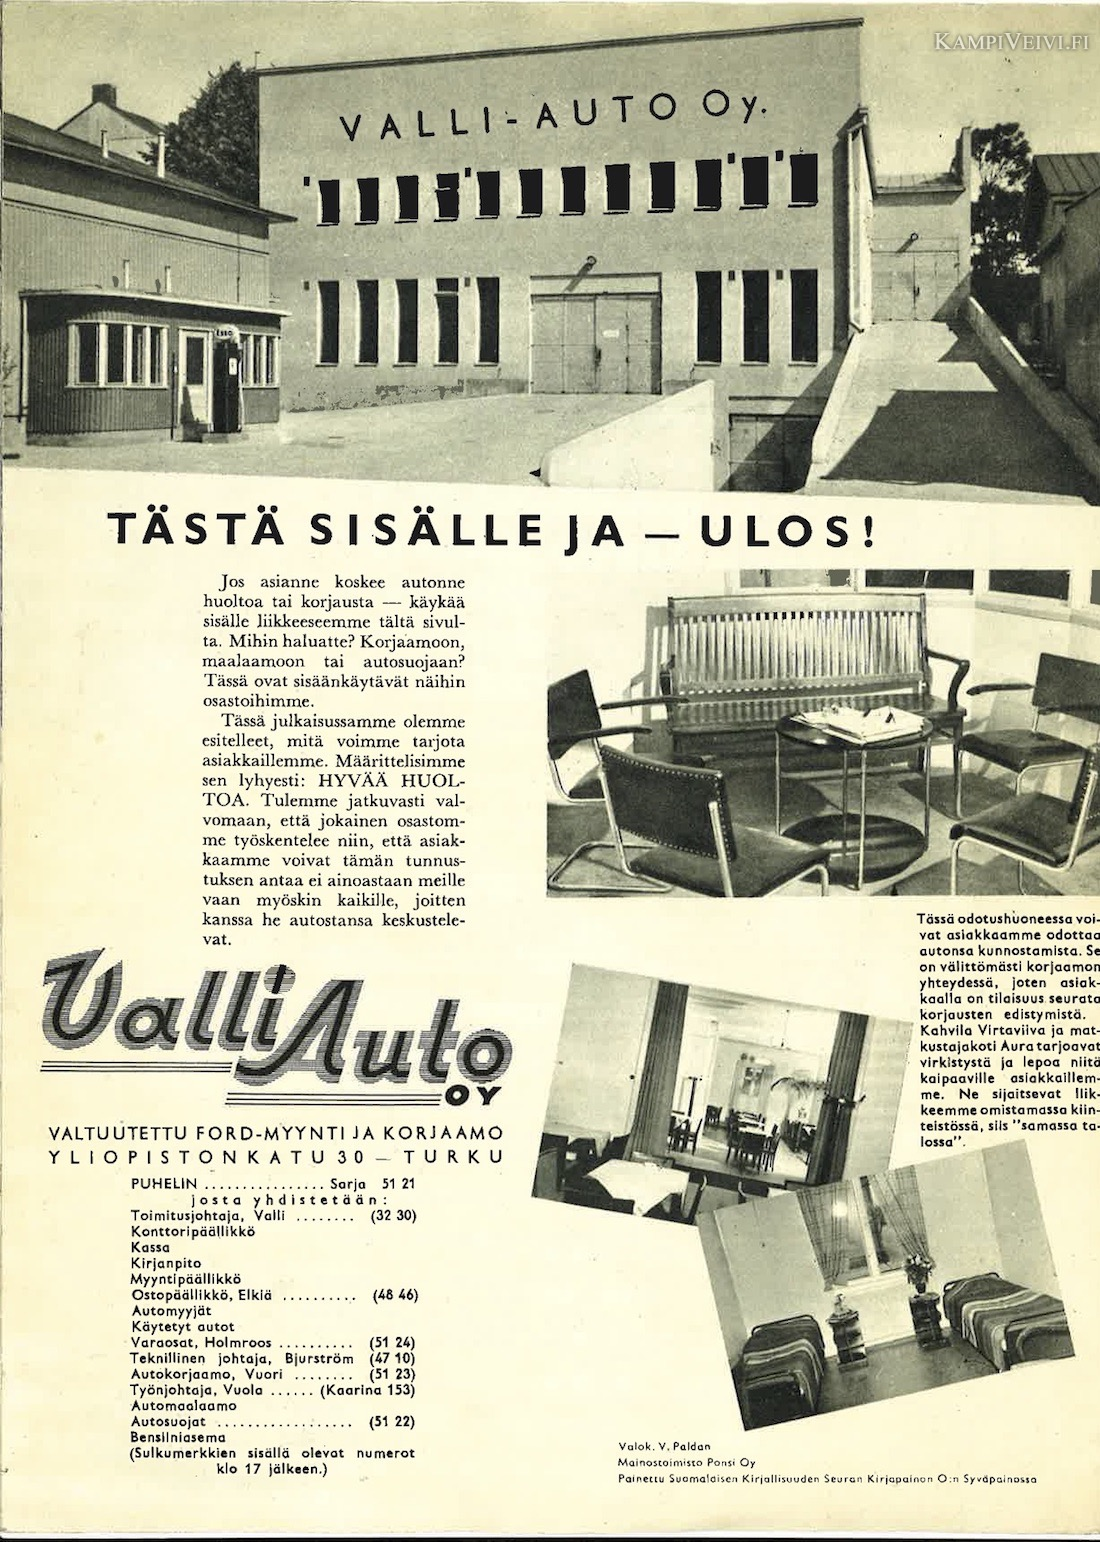 valliauto1940_takakansi